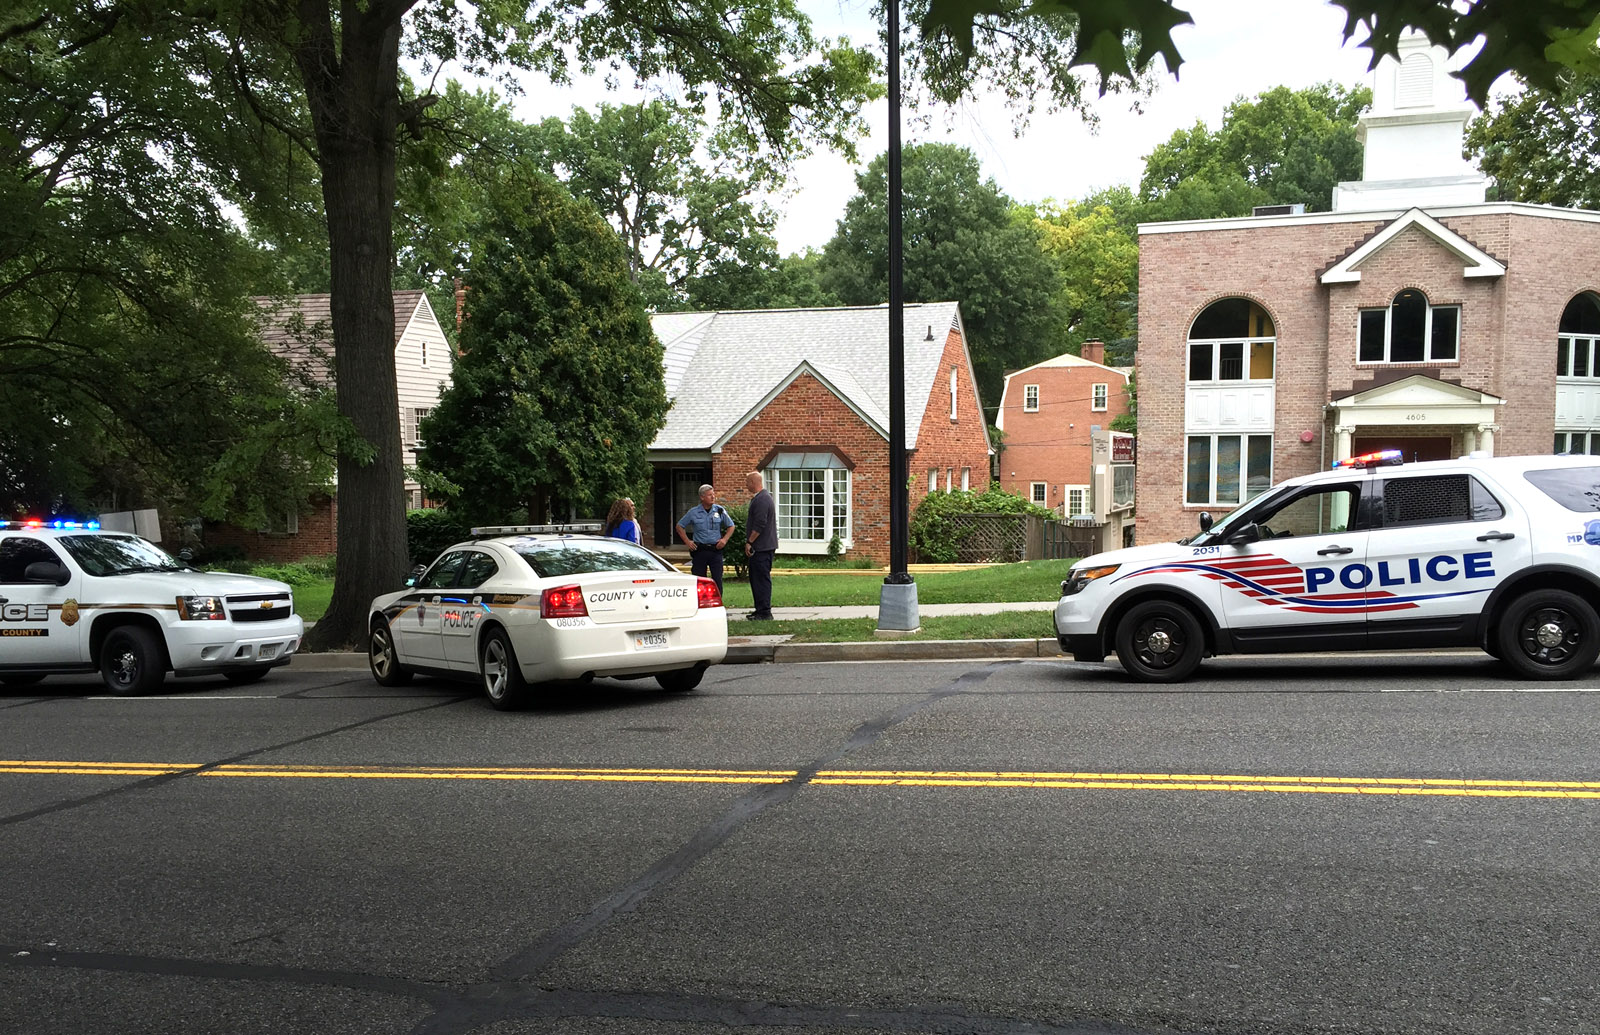 Carjacking reported in D.C.